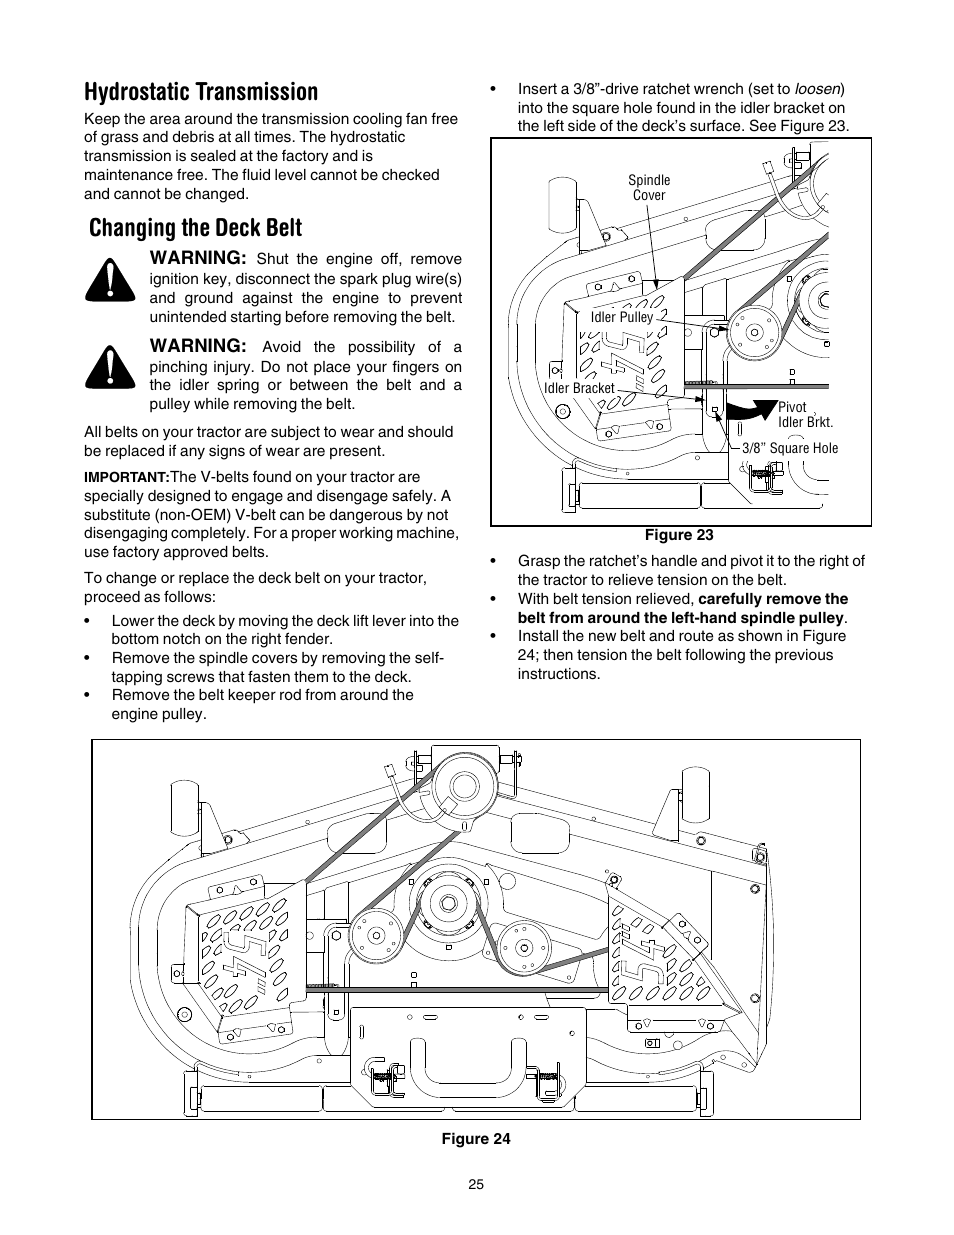 hight resolution of hydrostatic transmission changing the deck belt cub cadet gt 1554 cub cadet 1554 drive belt diagram cub cadet gt1554 drive belt diagram